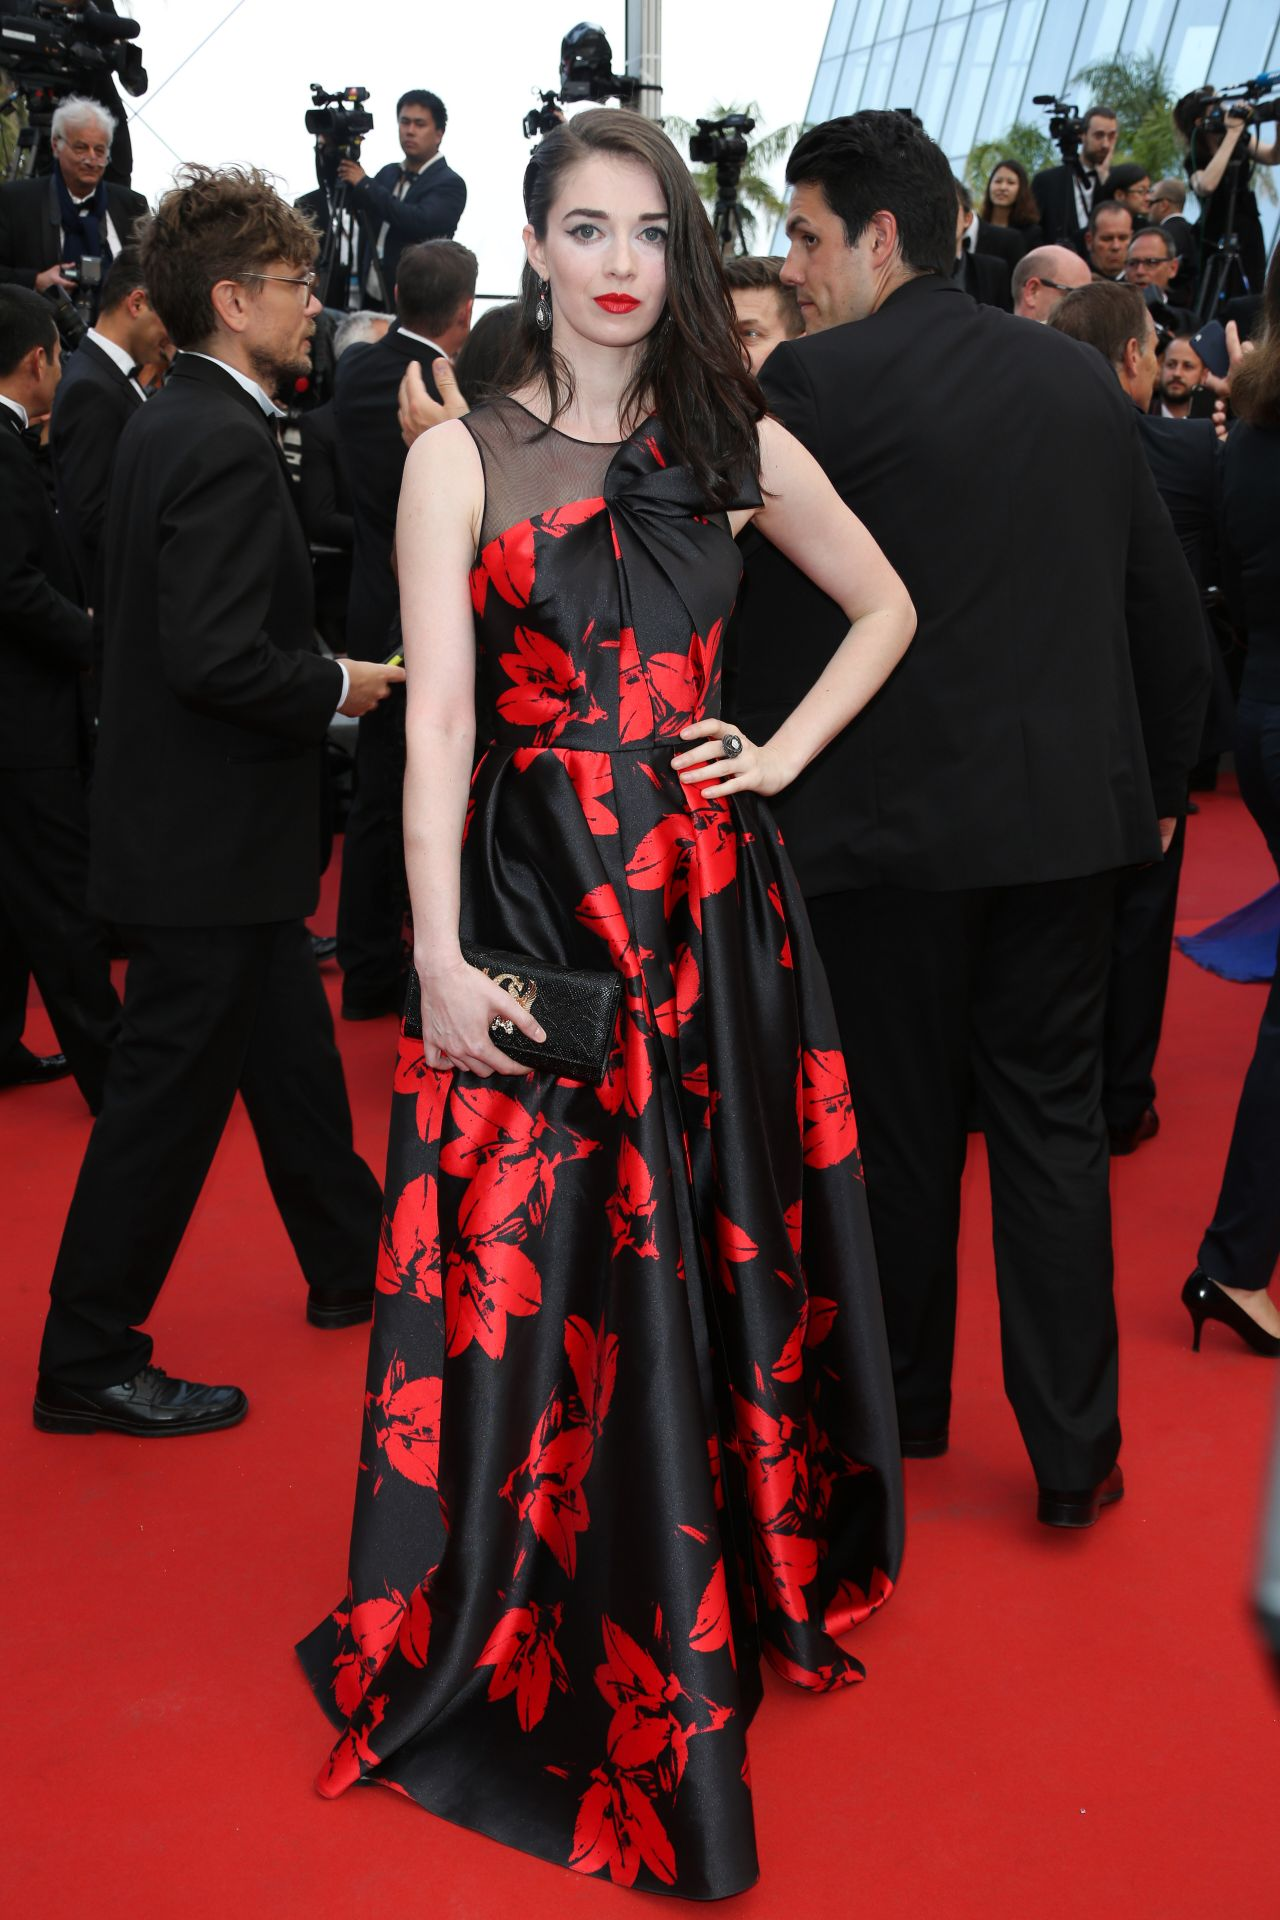 Sarah barzyk twin peaks premiere at cannes film festival